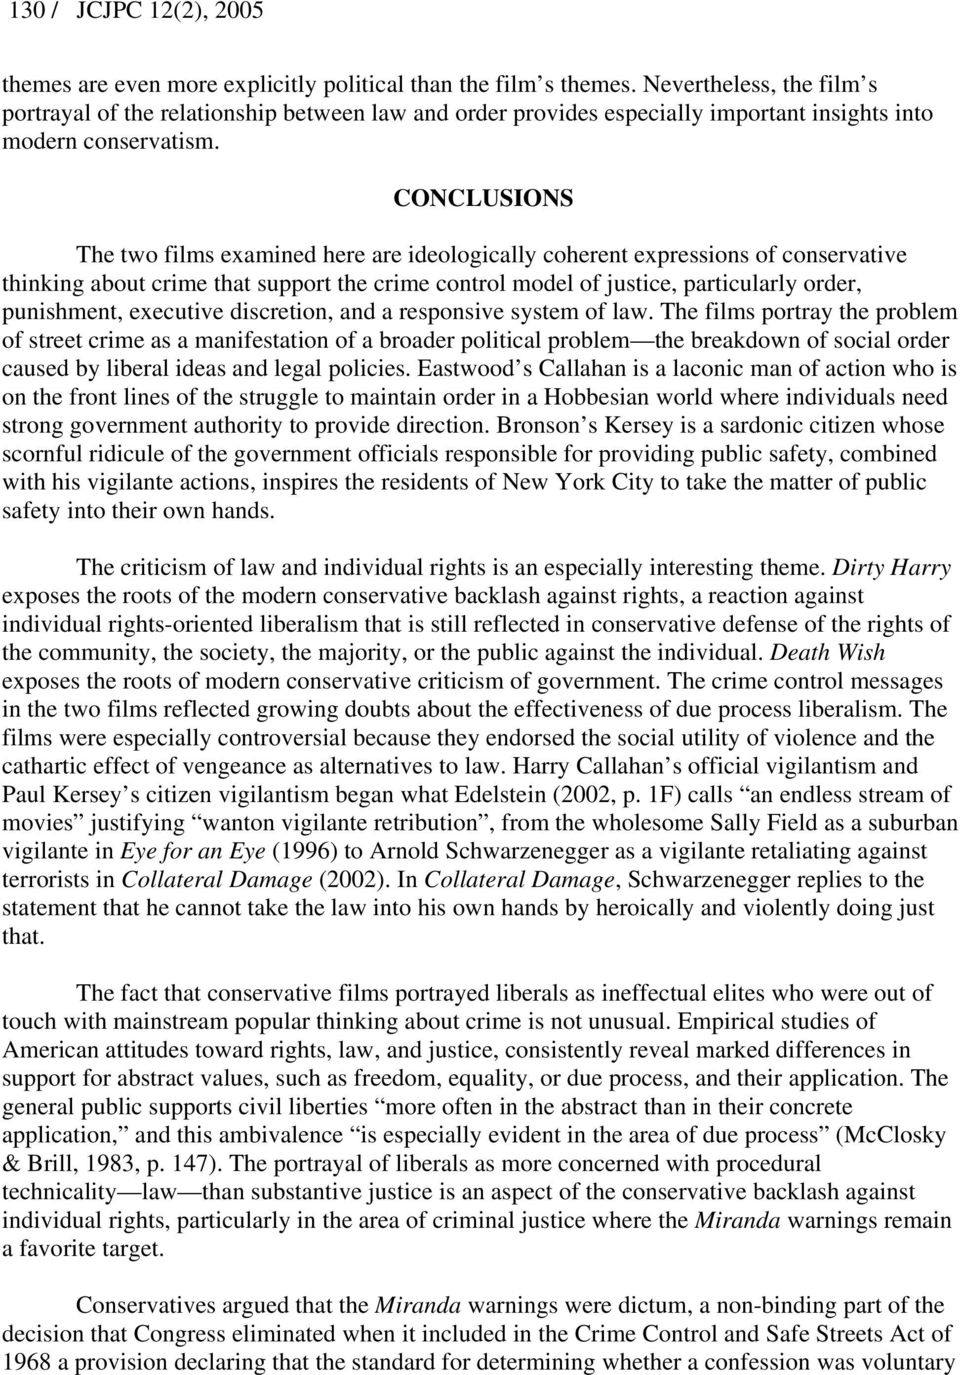 CONCLUSIONS The two films examined here are ideologically coherent expressions of conservative thinking about crime that support the crime control model of justice, particularly order, punishment,